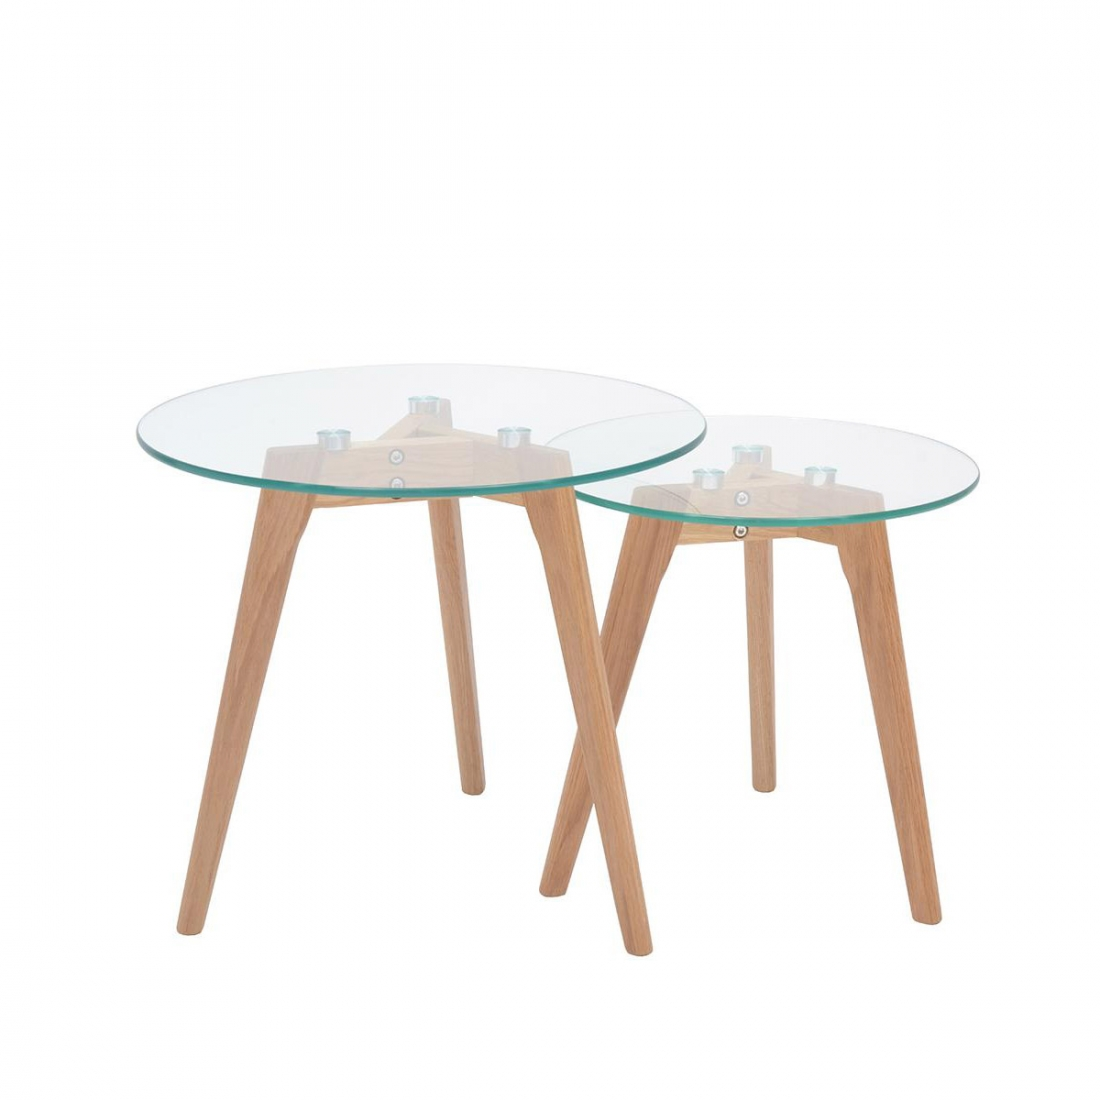 Table basse verre design avec plateau en verre zendart - Table basse verre design ...